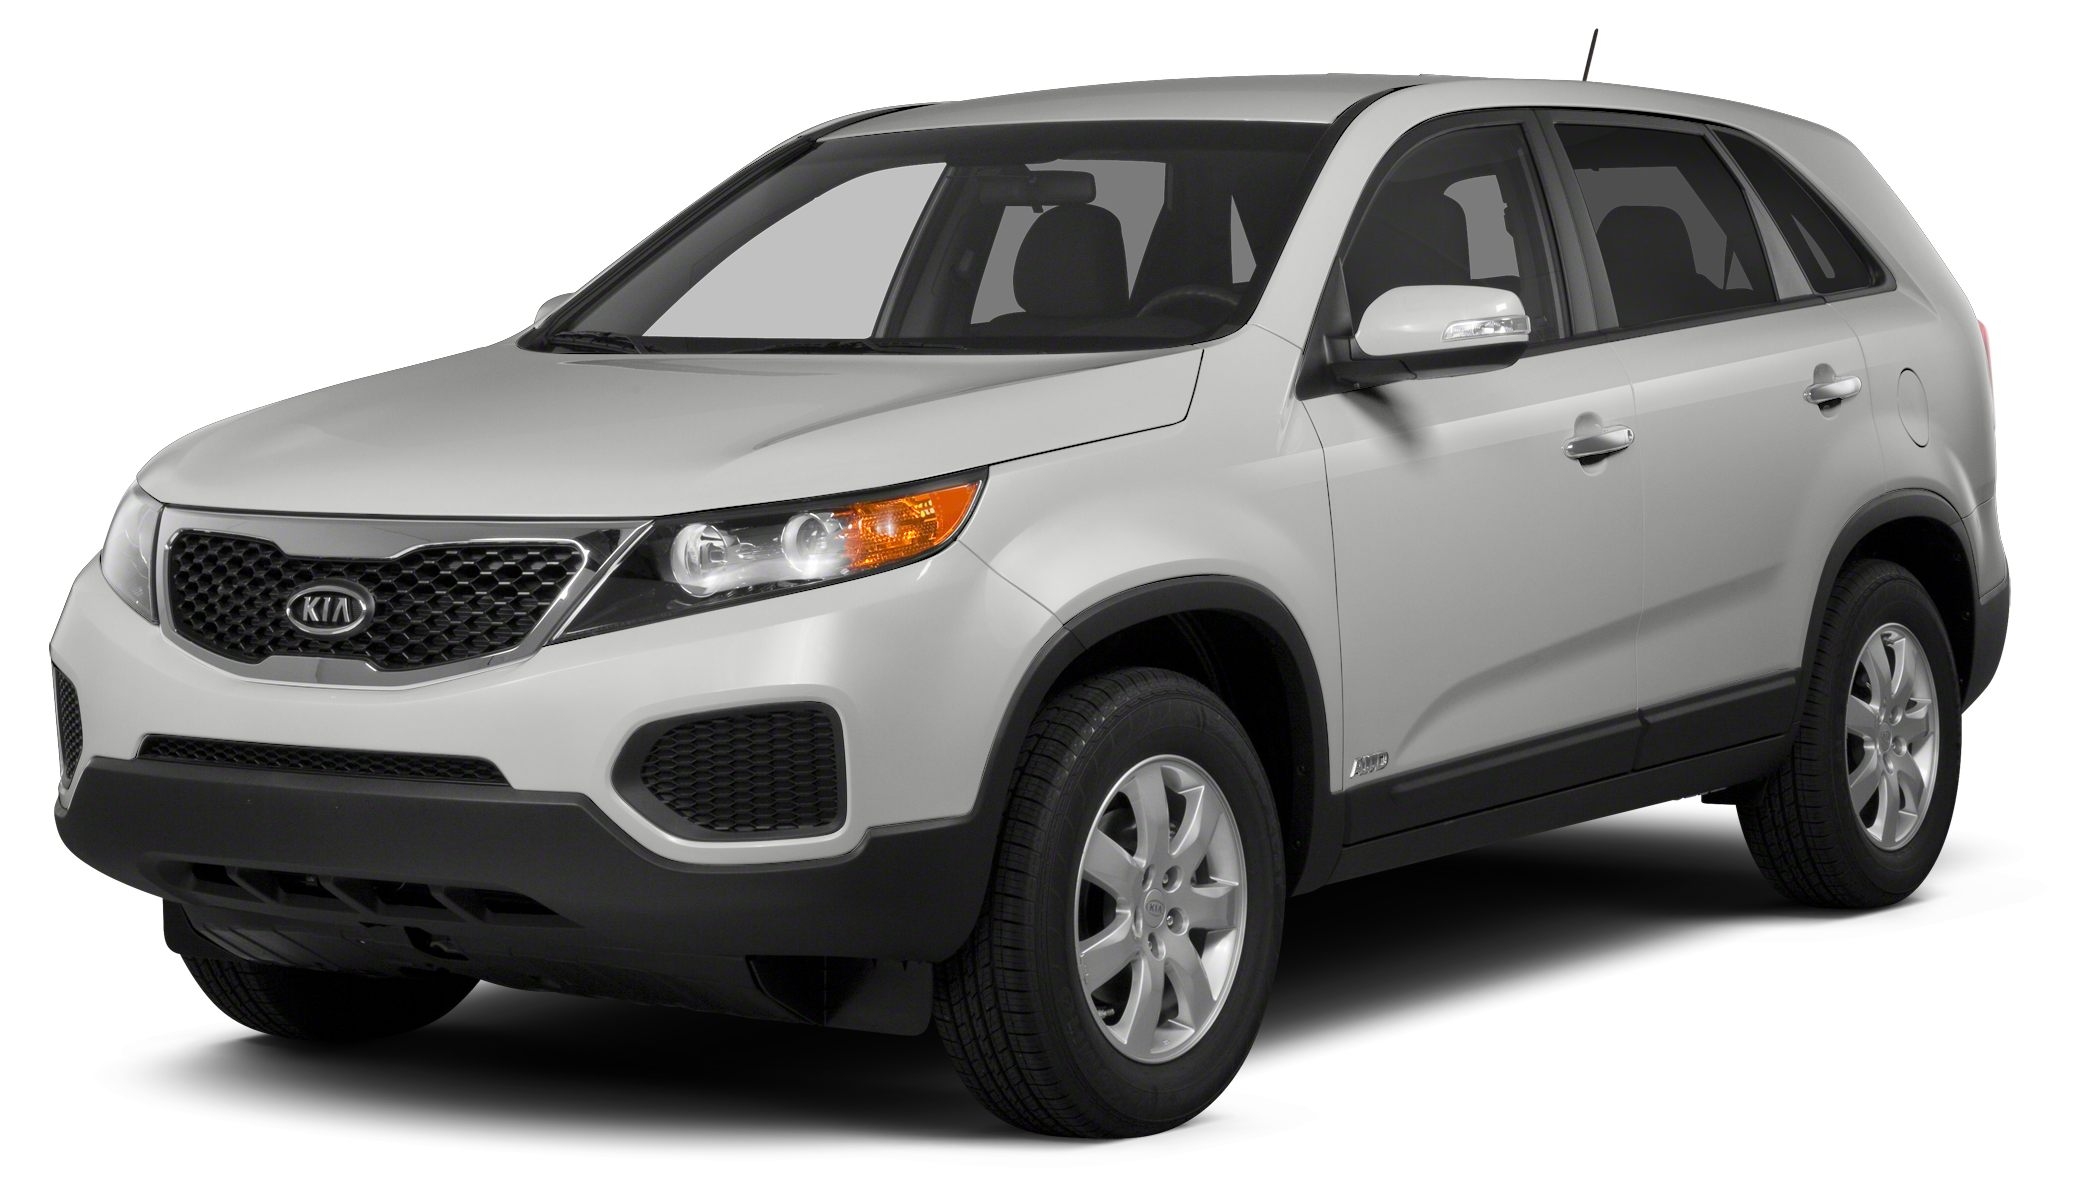 2013 Kia Sorento EX CLEAN CARFAX ONE OWNER BACK-UP-CAMERA BLUETOOTH SUNROOF TH